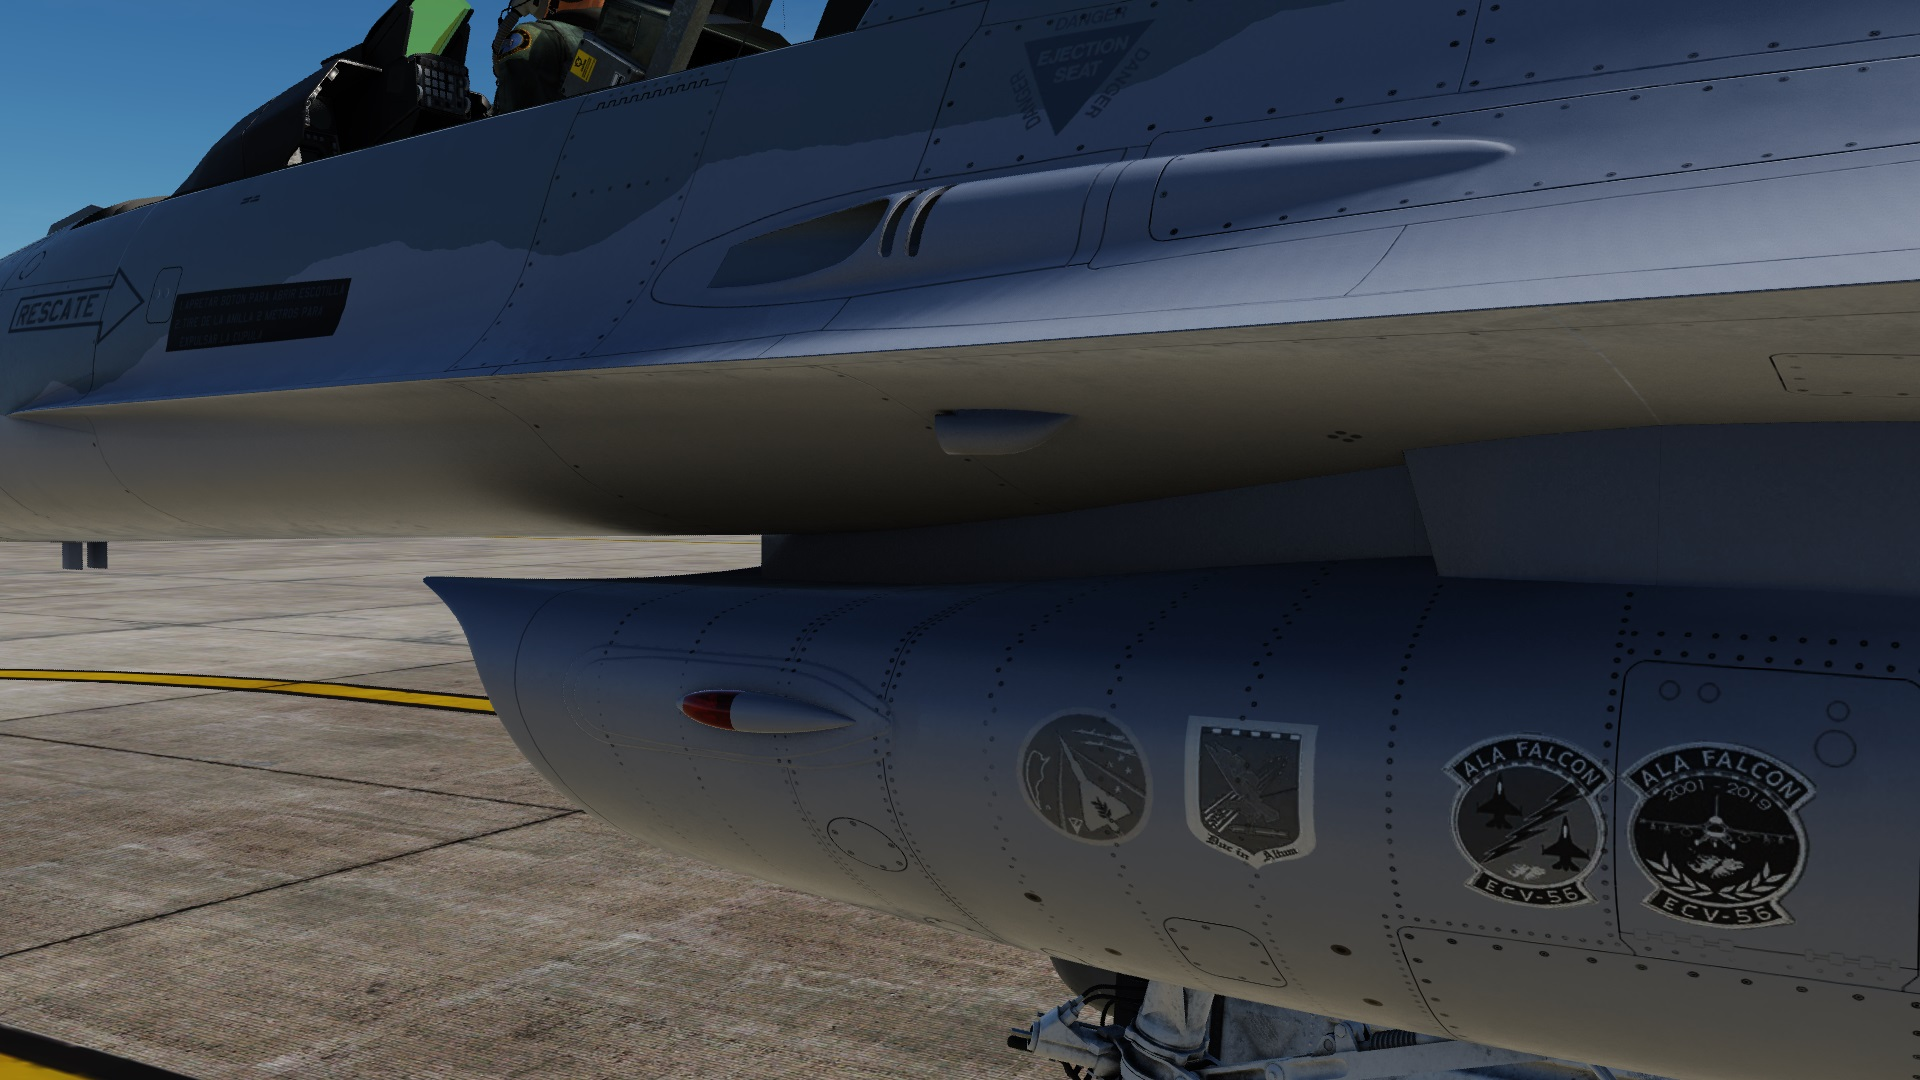 F-16C 50 Falcon BMS wing of the ECV 56 Condor (fictional) FIXED 2.5.6+ (TOTALLY NEW SKIN MADE WITH OFICIAL TEMPLATE)